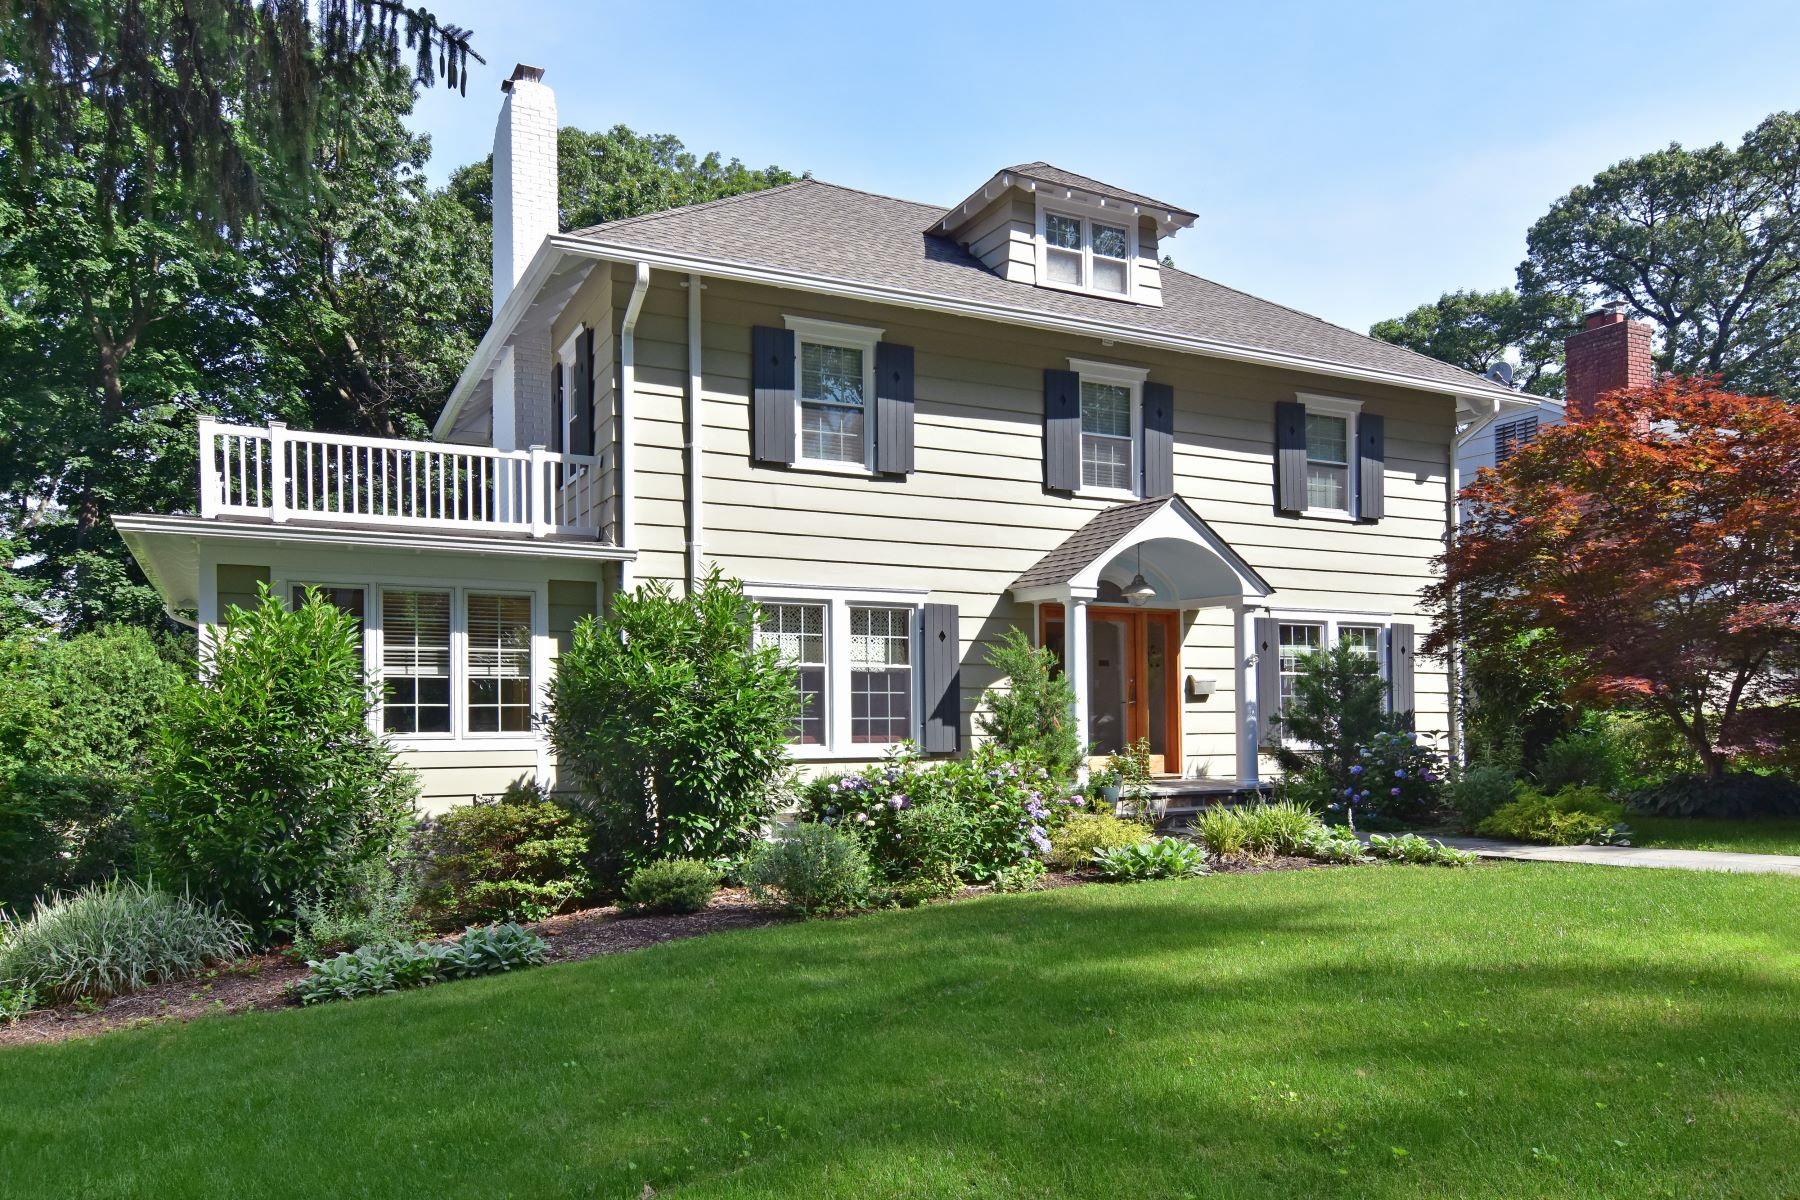 Single Family Homes for Sale at Welcome to 45 Harmon Avenue! 45 Harmon Avenue Pelham, New York 10803 United States